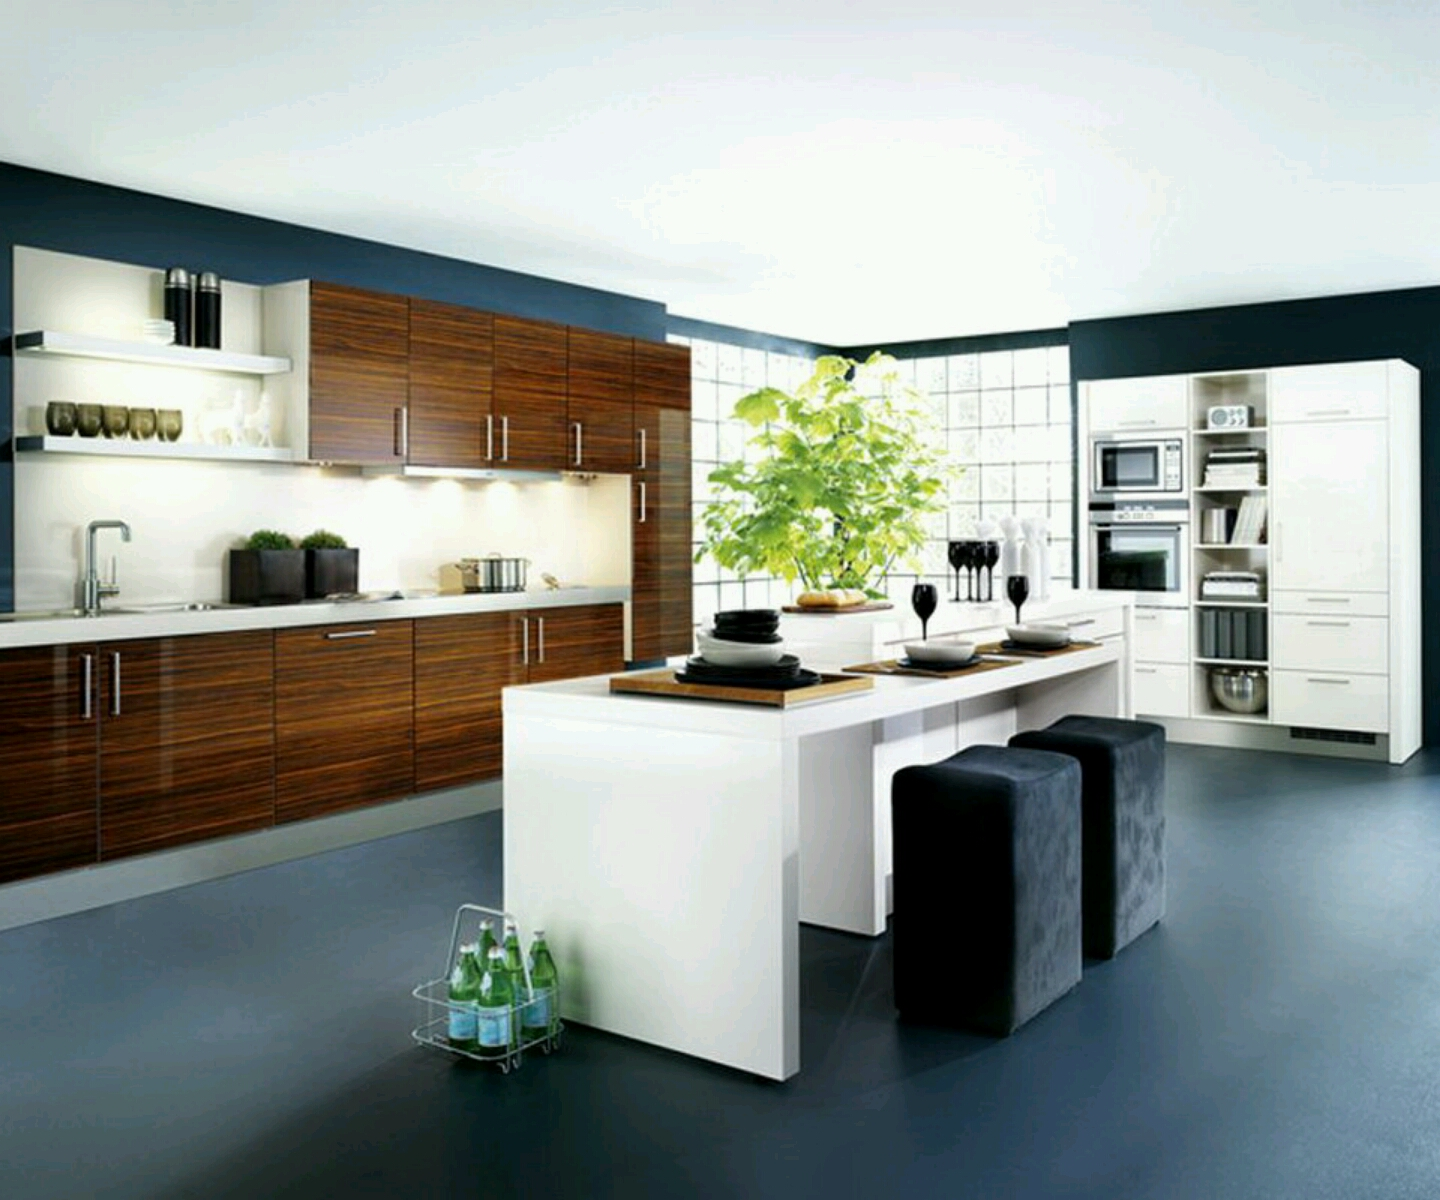 New home designs latest kitchen cabinets designs modern for Small contemporary kitchen designs